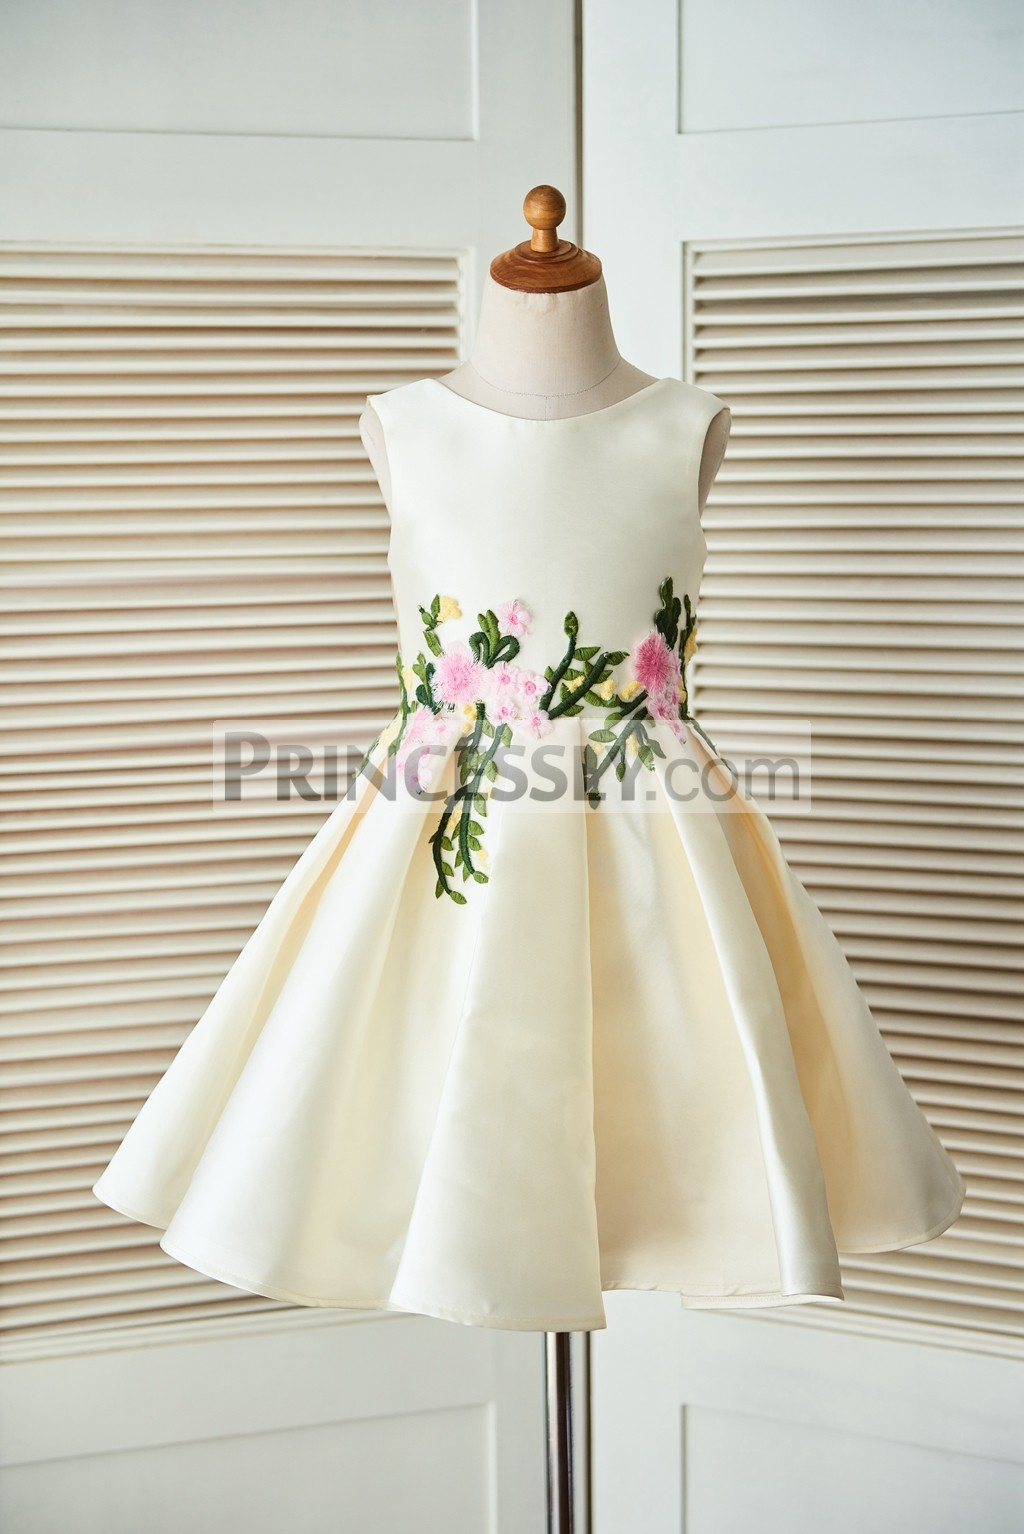 Satin Colored Embroidery Lace Appliques Box-pleated Skirt Flower Girl Dress